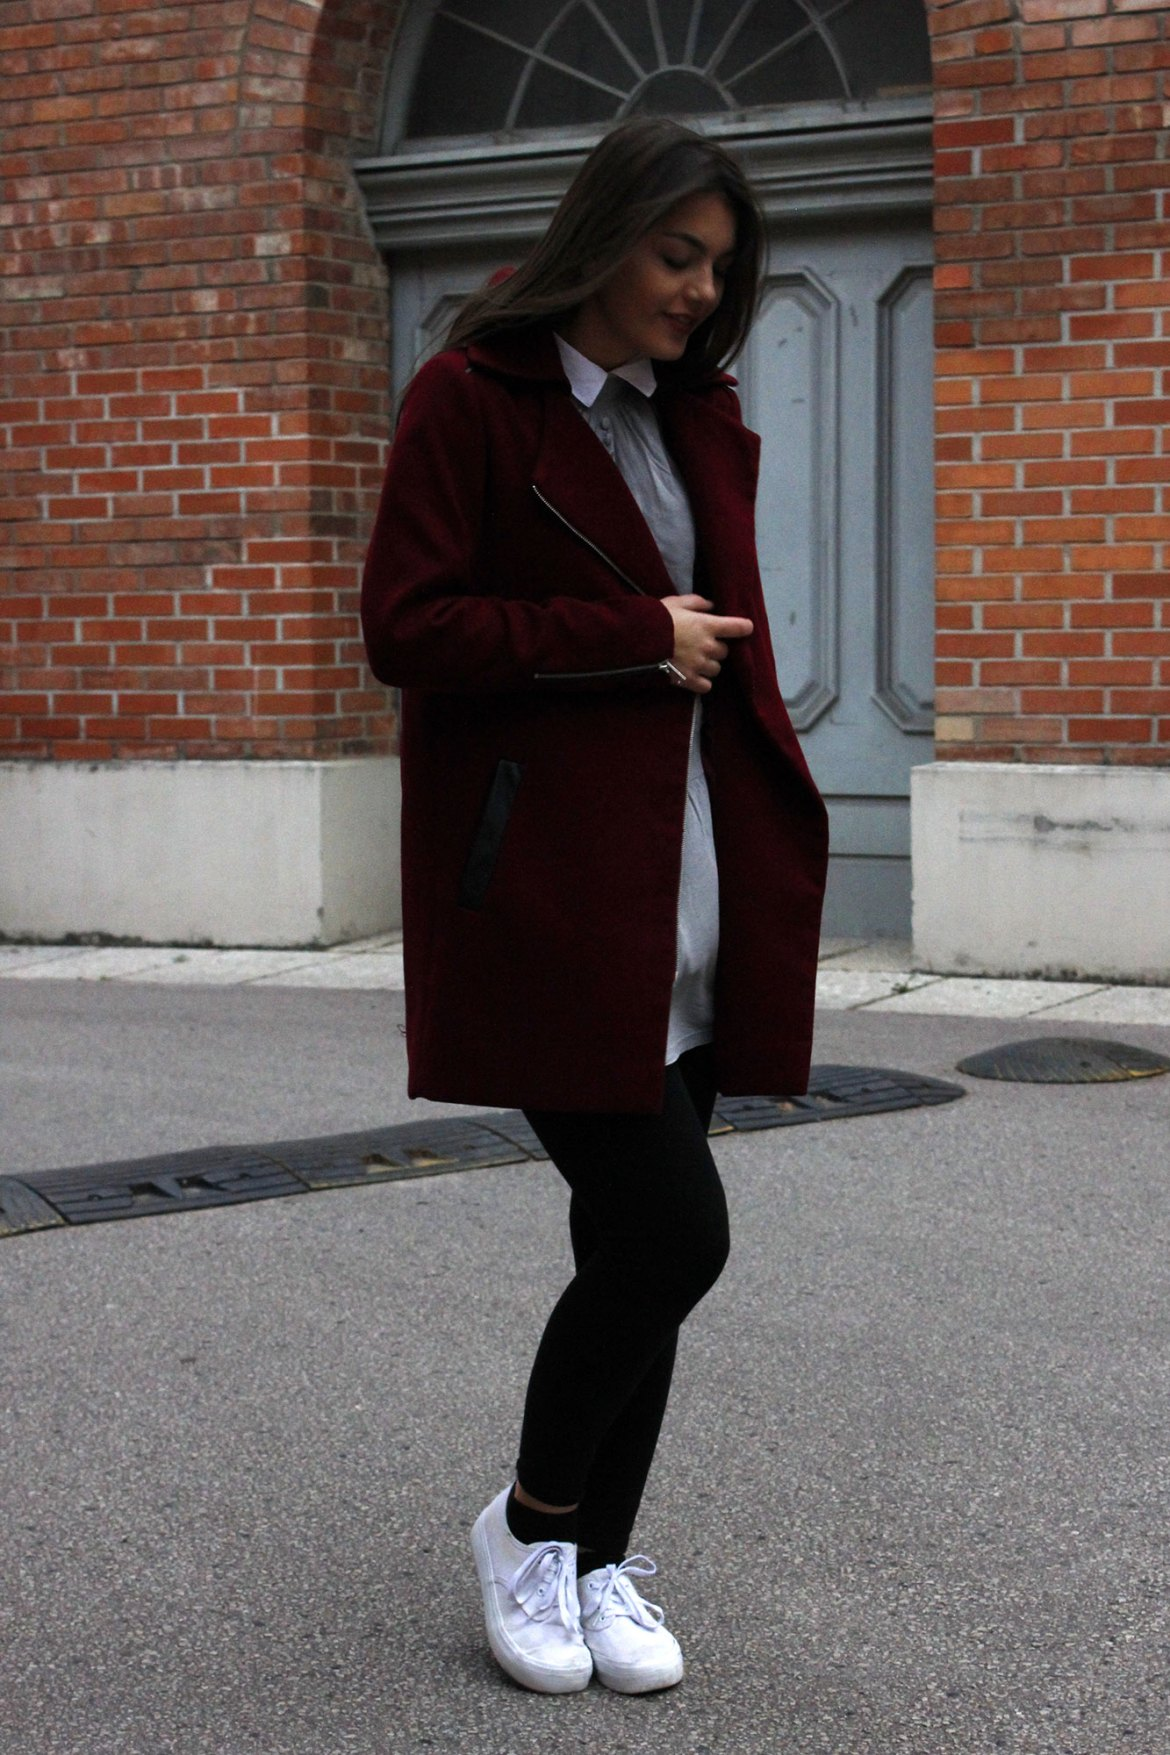 Dorie wearing a red coat and black legging and white shoes